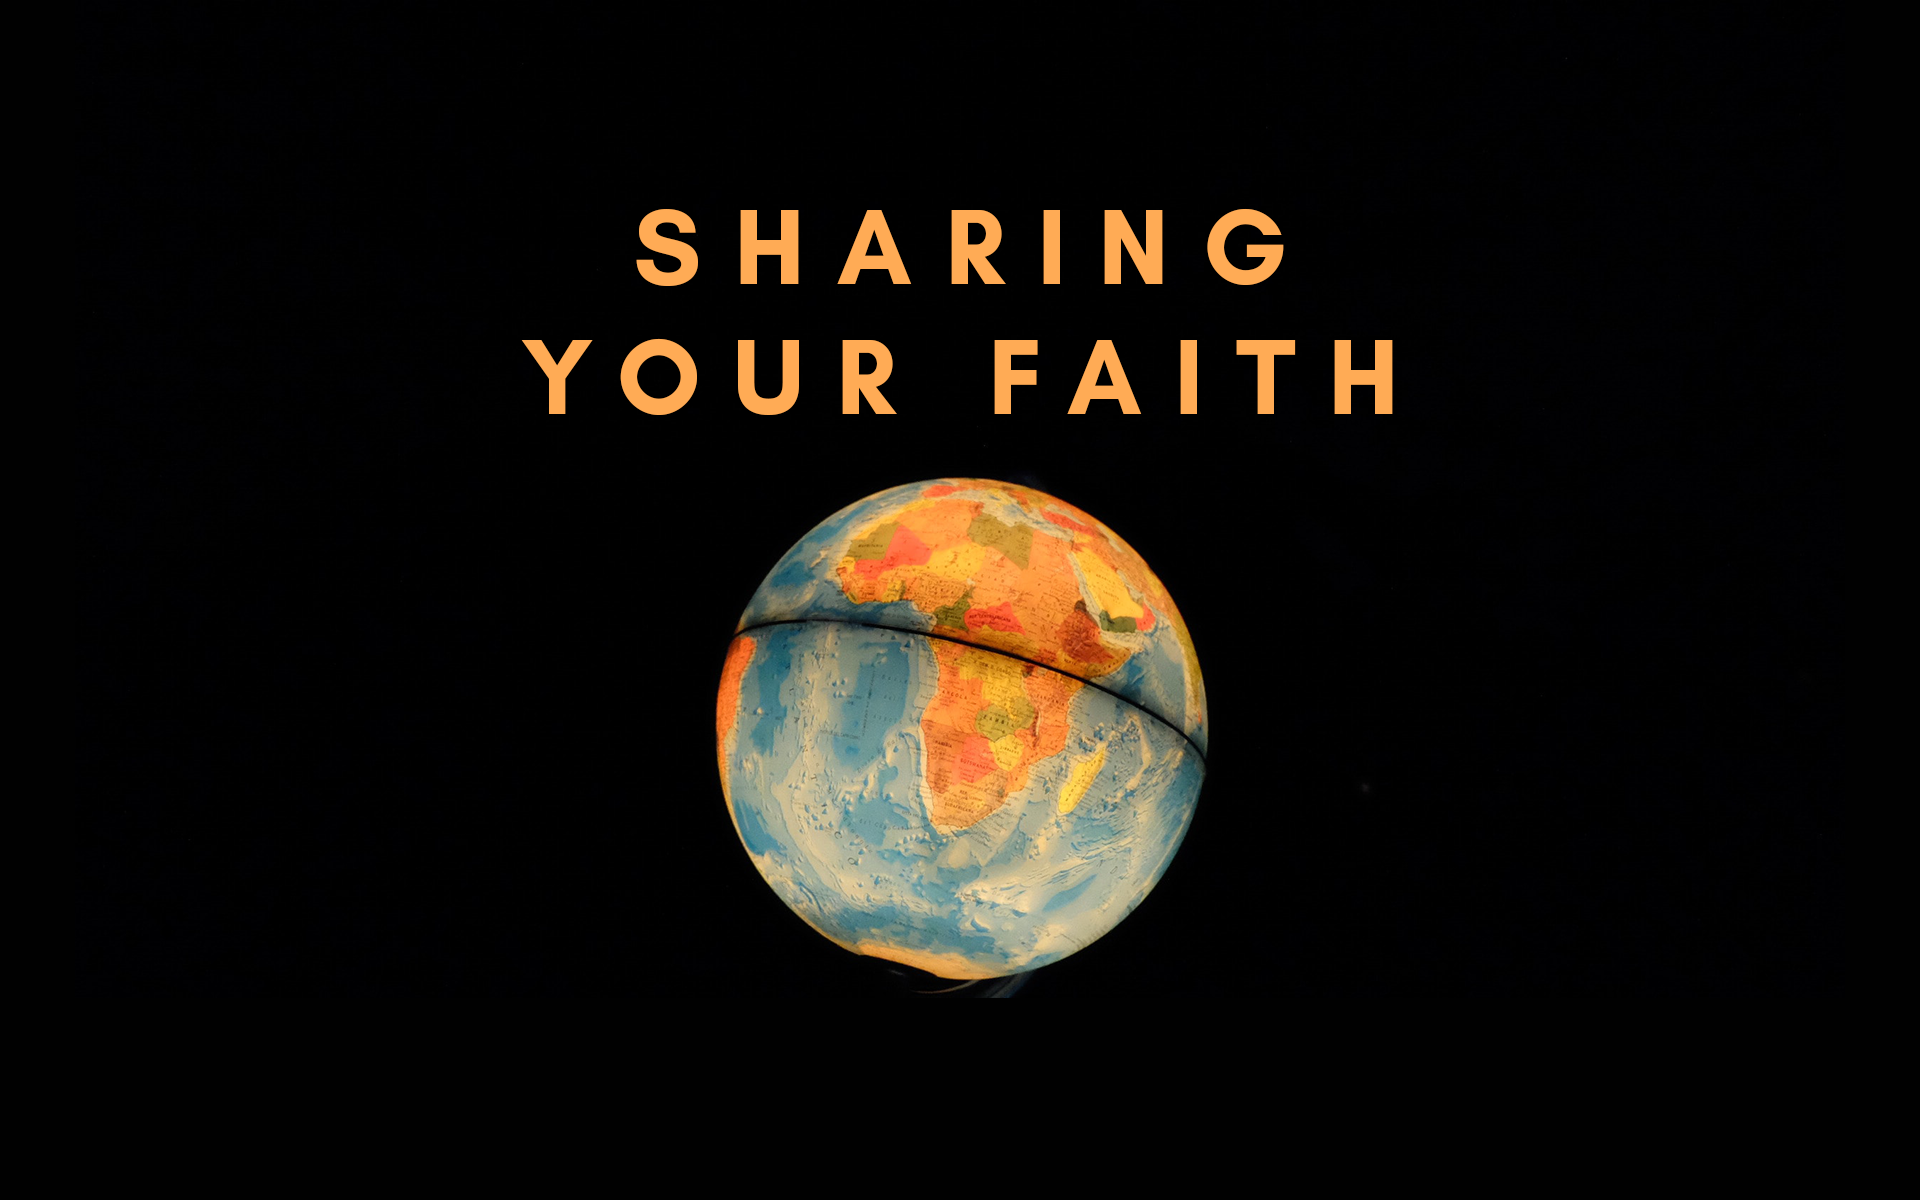 sharingyourfaithnoinfo.png